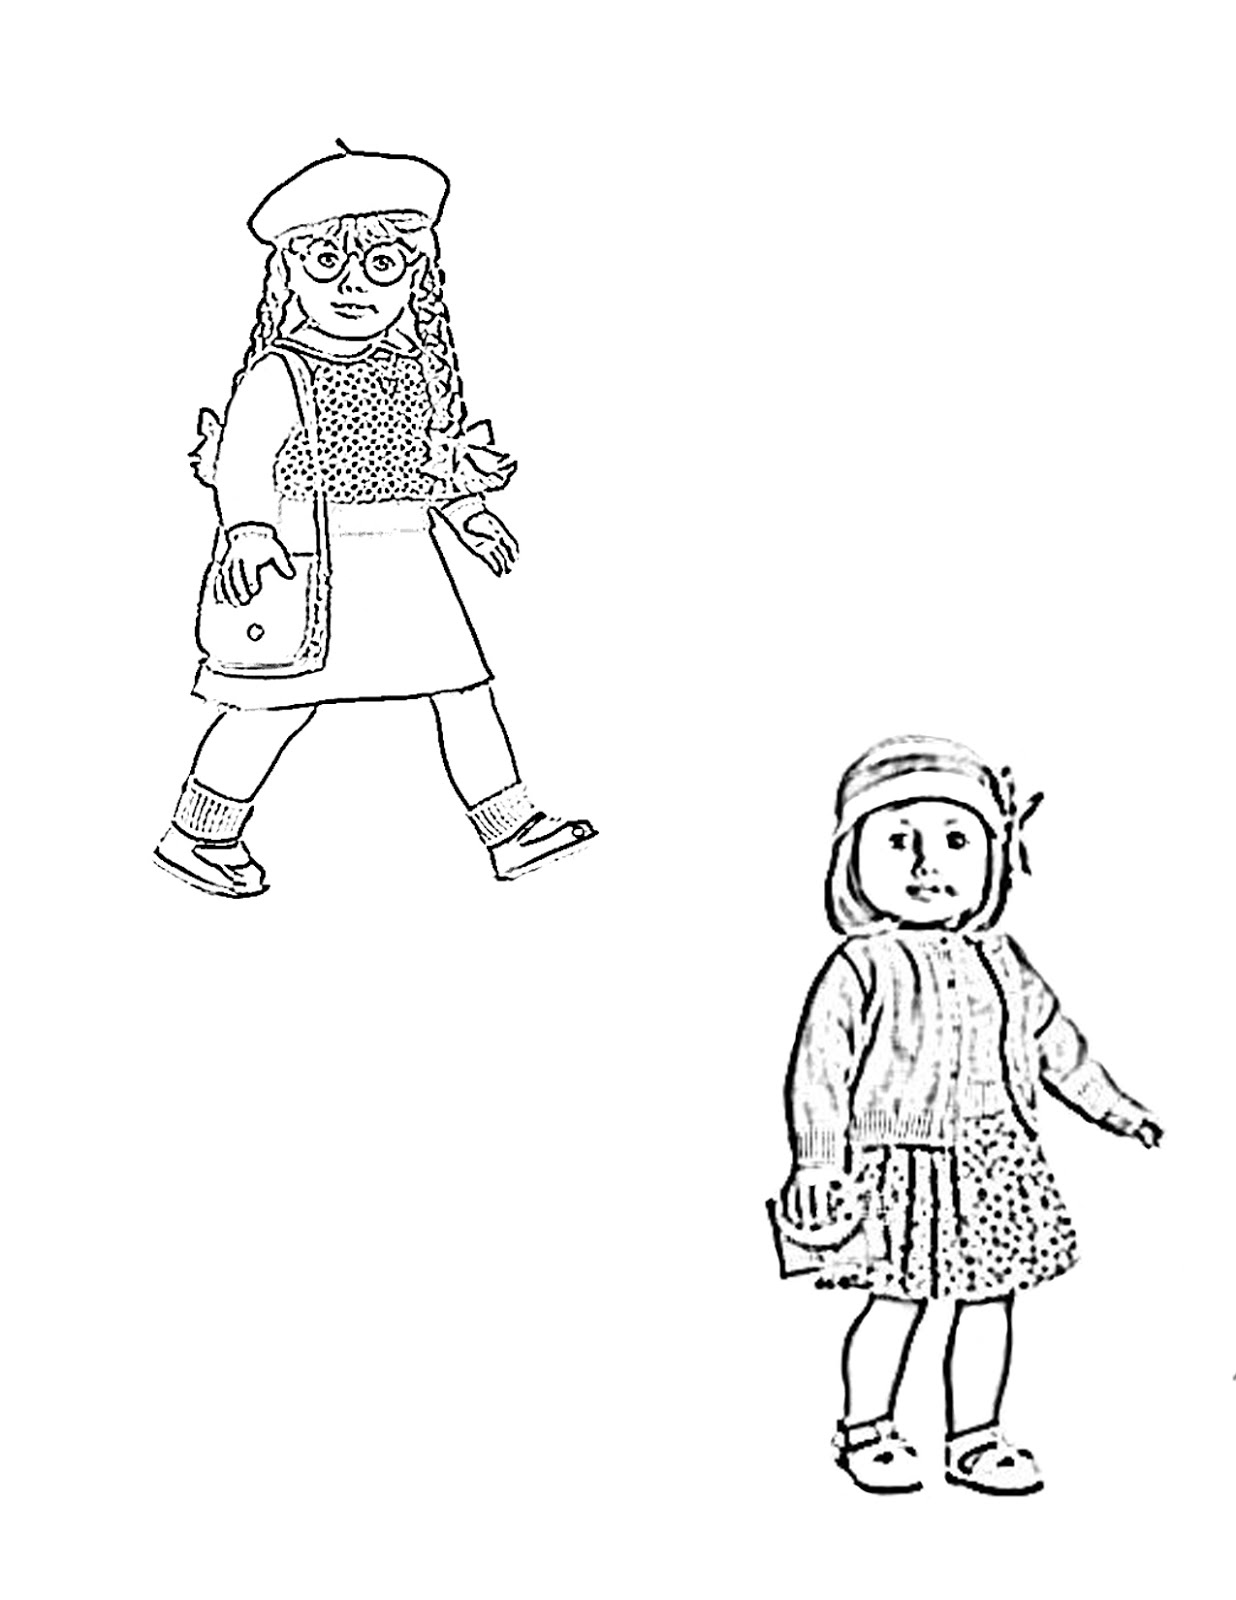 american girl doll coloring pages to print american doll coloring pages coloringsuite coloring pages coloring american to girl print doll